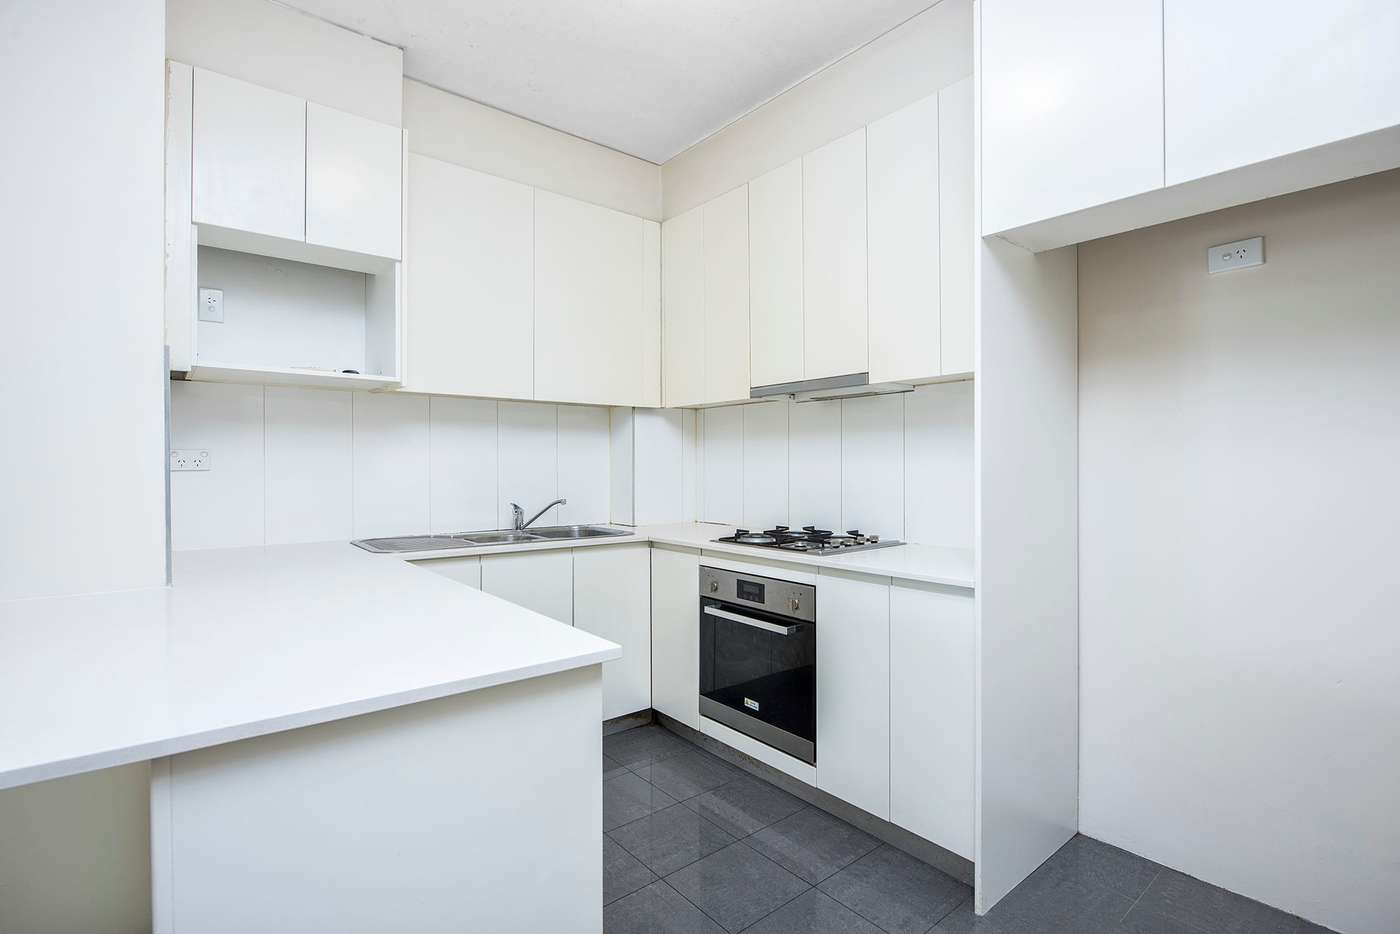 Main view of Homely apartment listing, 3 Campbell Street, Parramatta NSW 2150